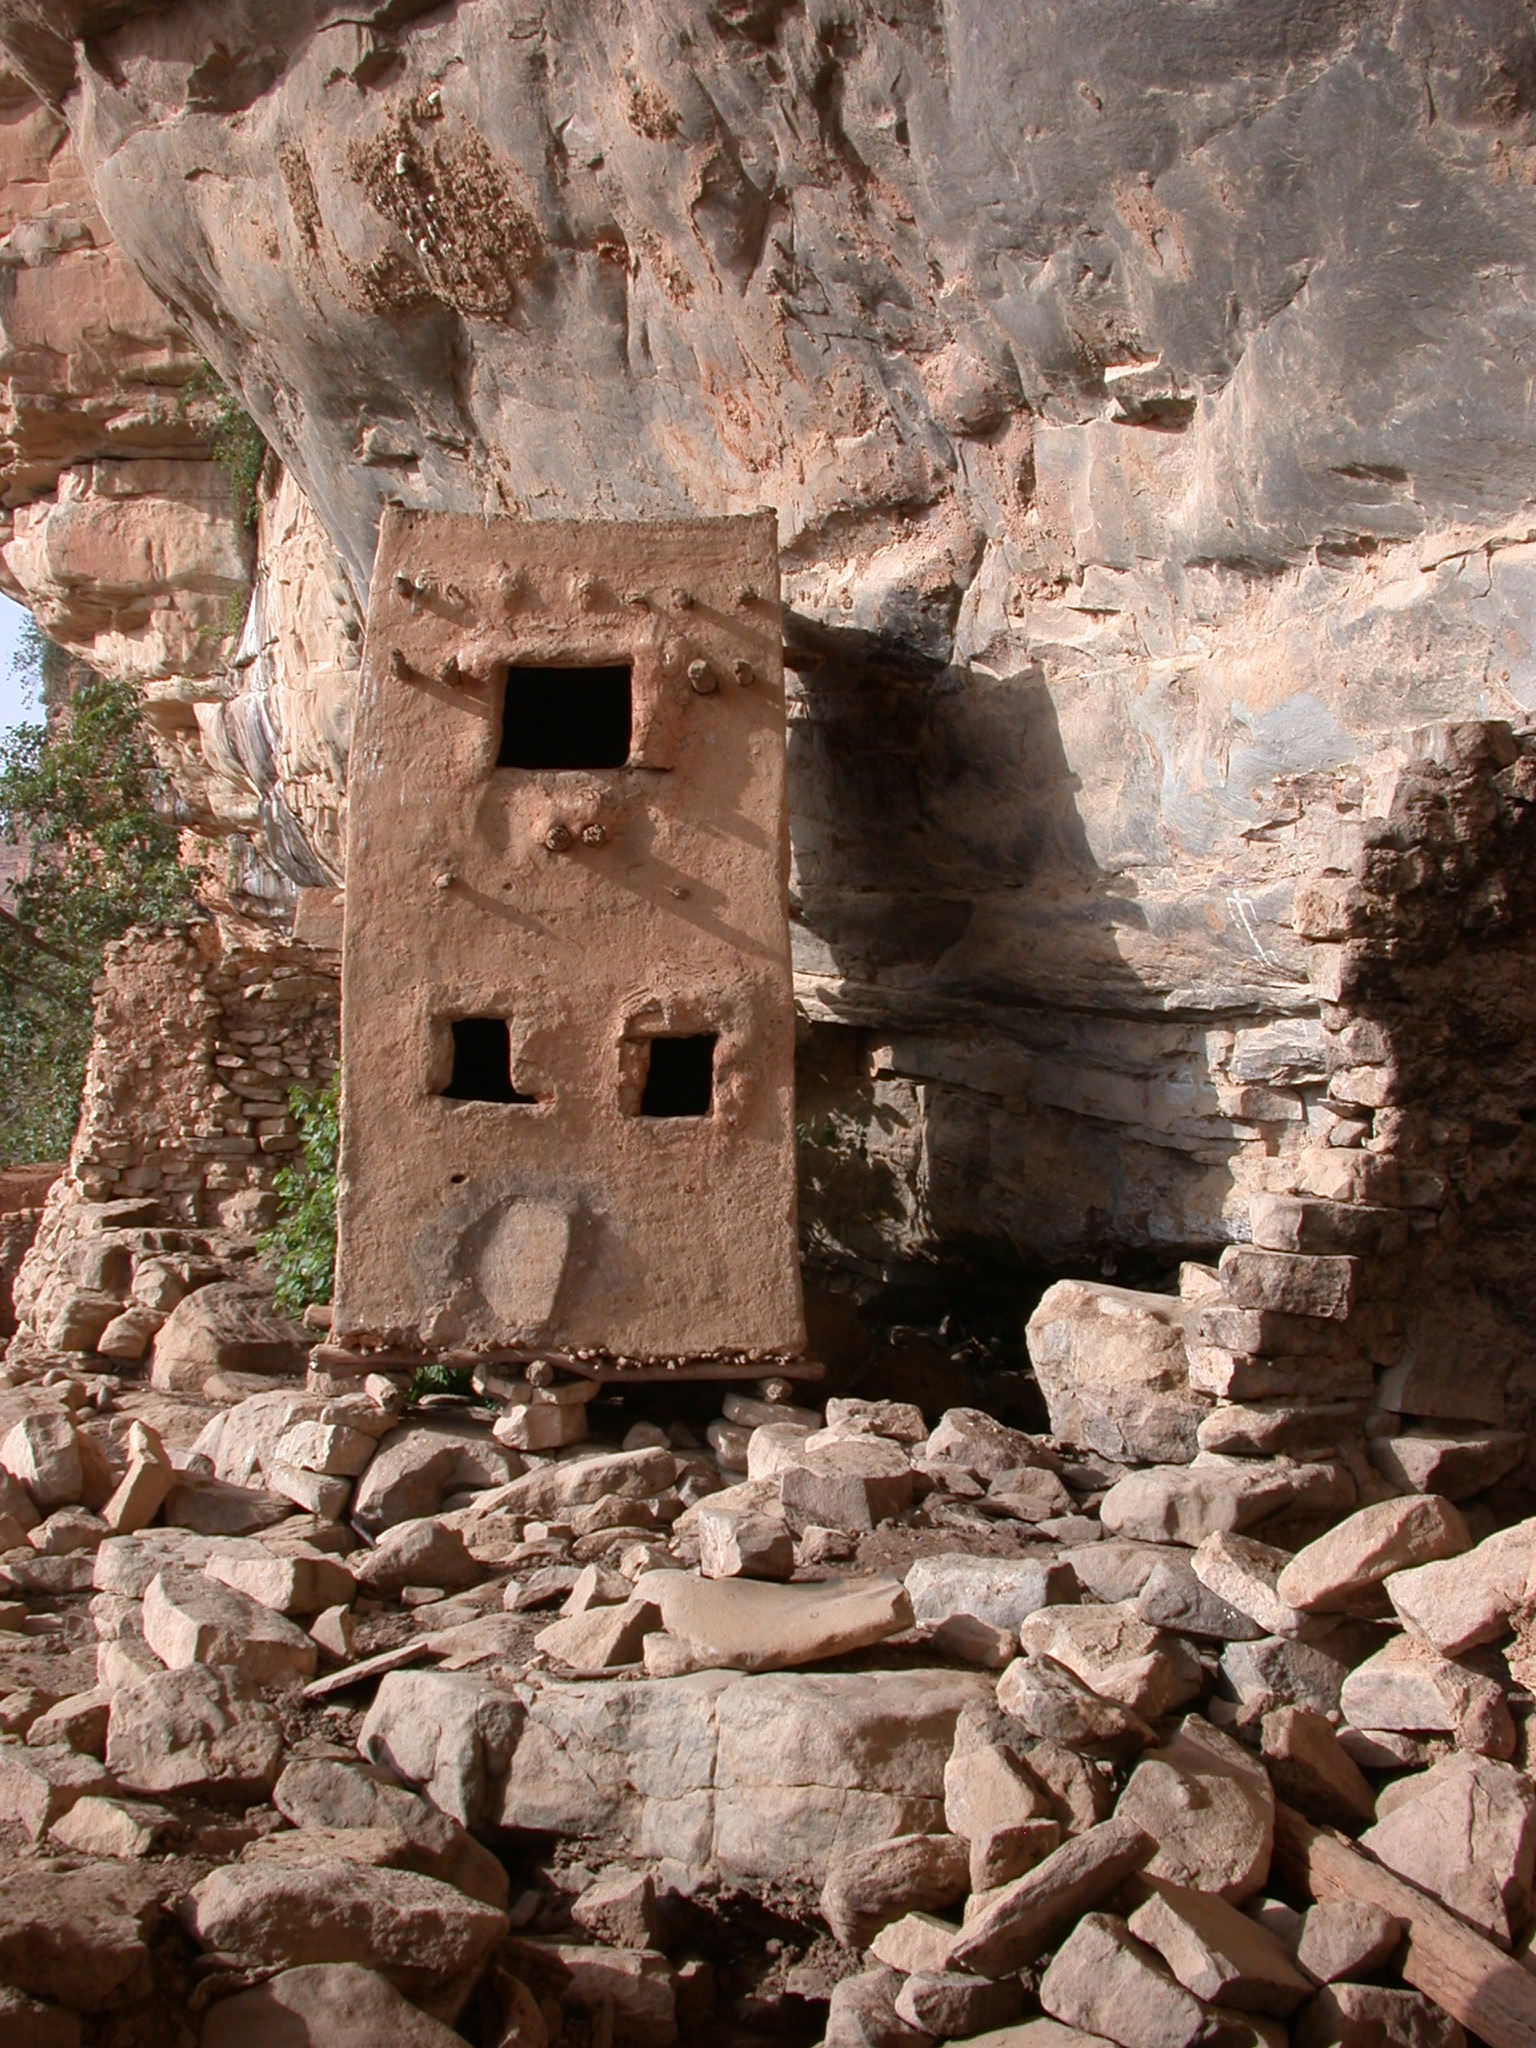 Probably Granary on Falaise Escarpment, Old Ennde Village, Dogon Country, Mali